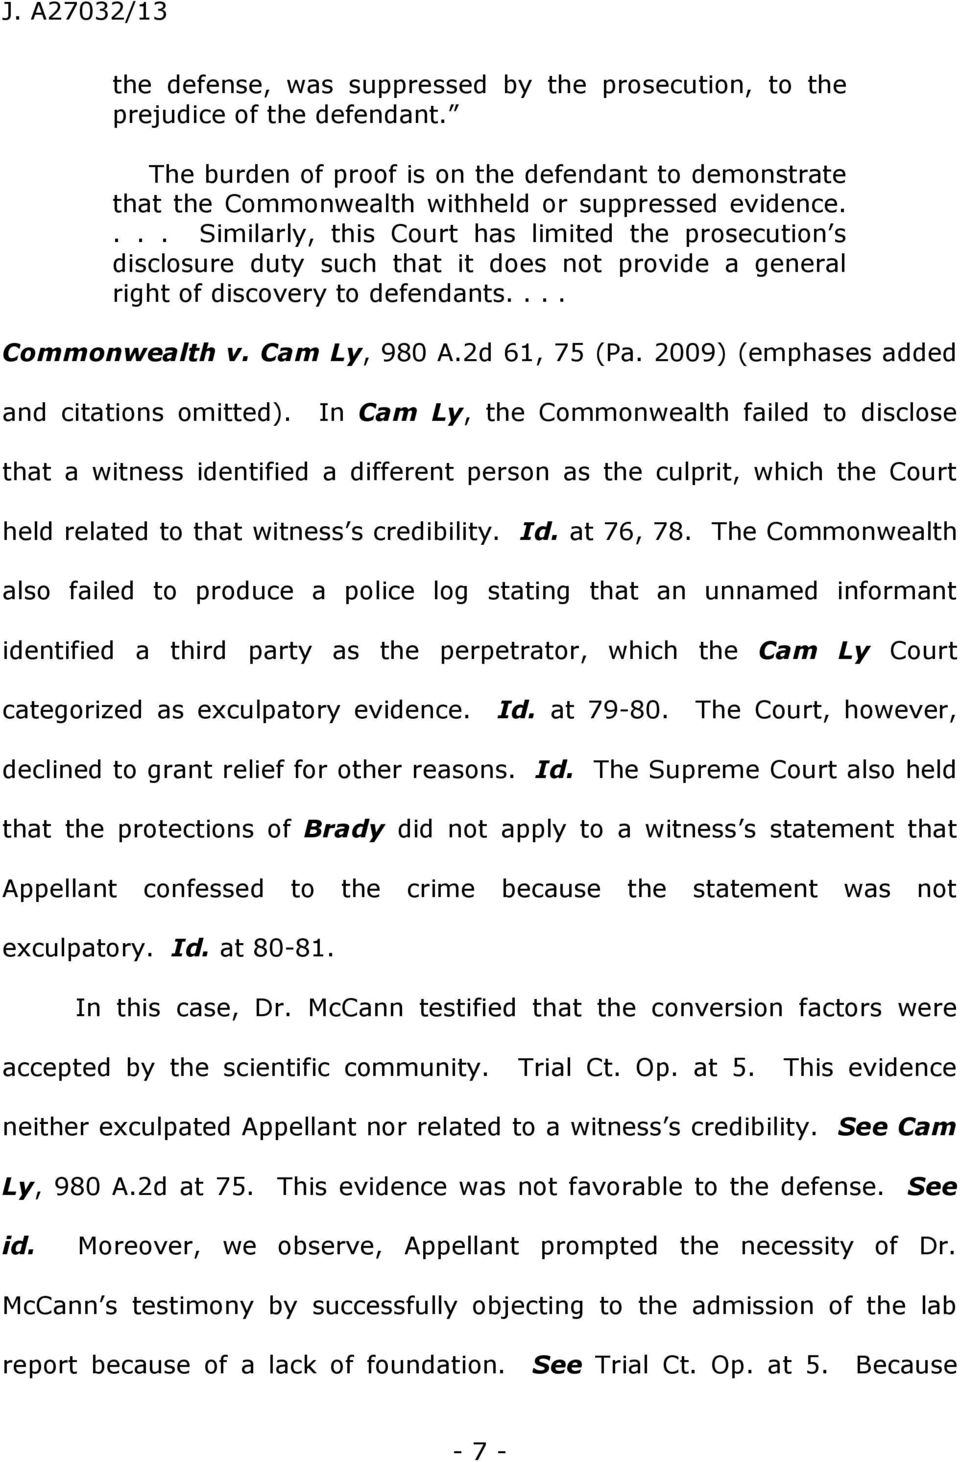 ... Similarly, this Court has limited the prosecution s disclosure duty such that it does not provide a general right of discovery to defendants.... Commonwealth v. Cam Ly, 980 A.2d 61, 75 (Pa.